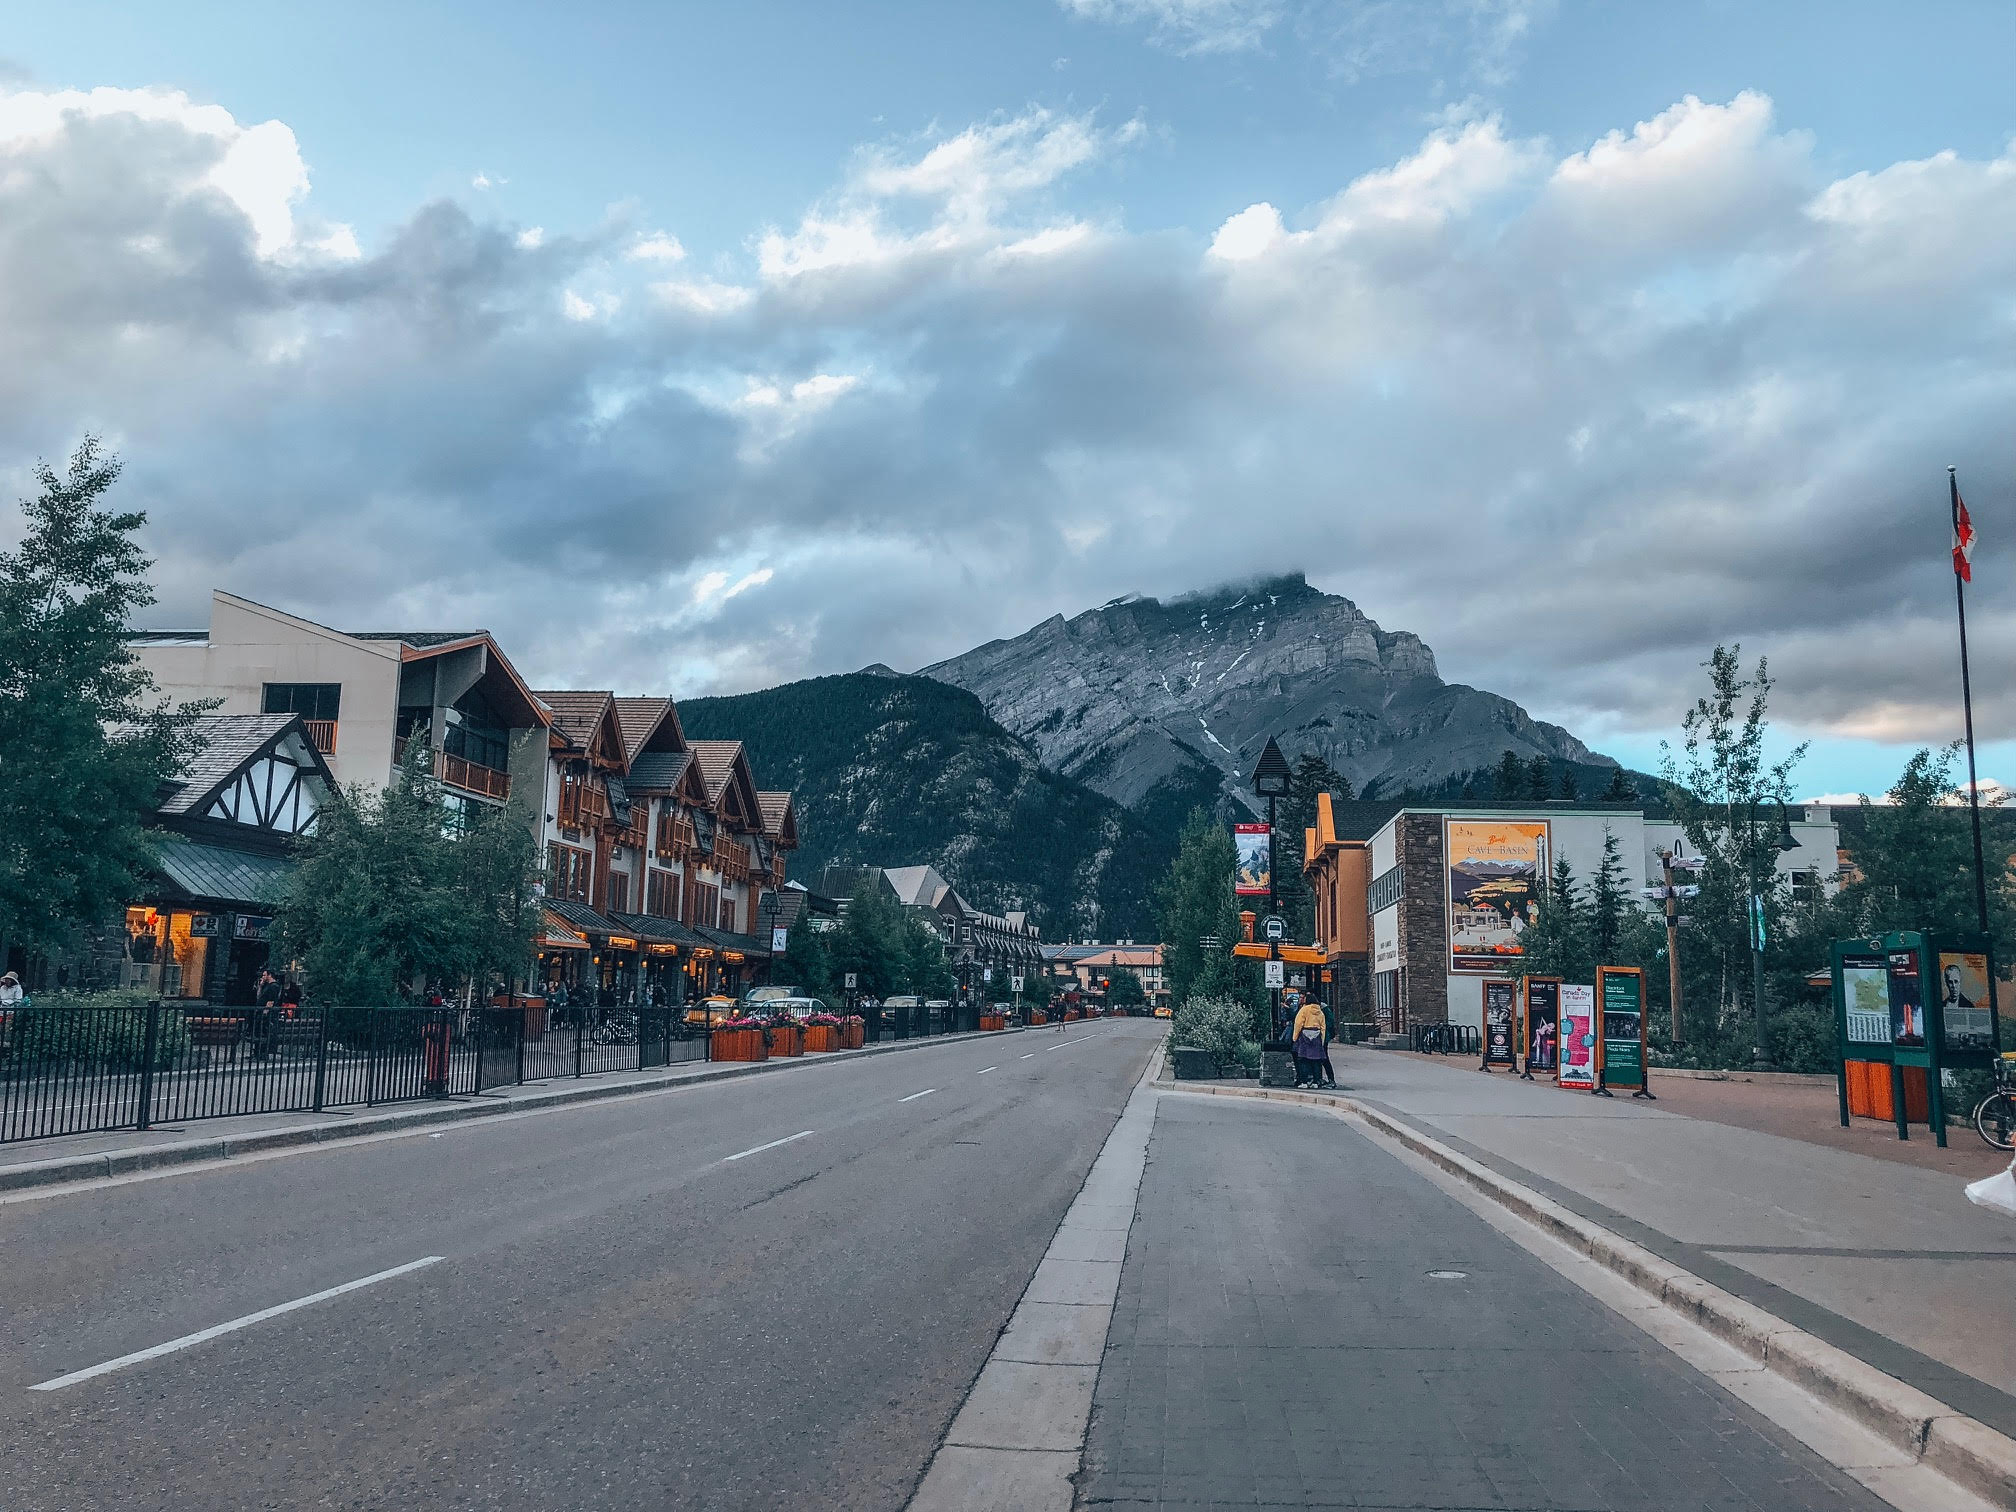 Things to do in Banff - Banff Town